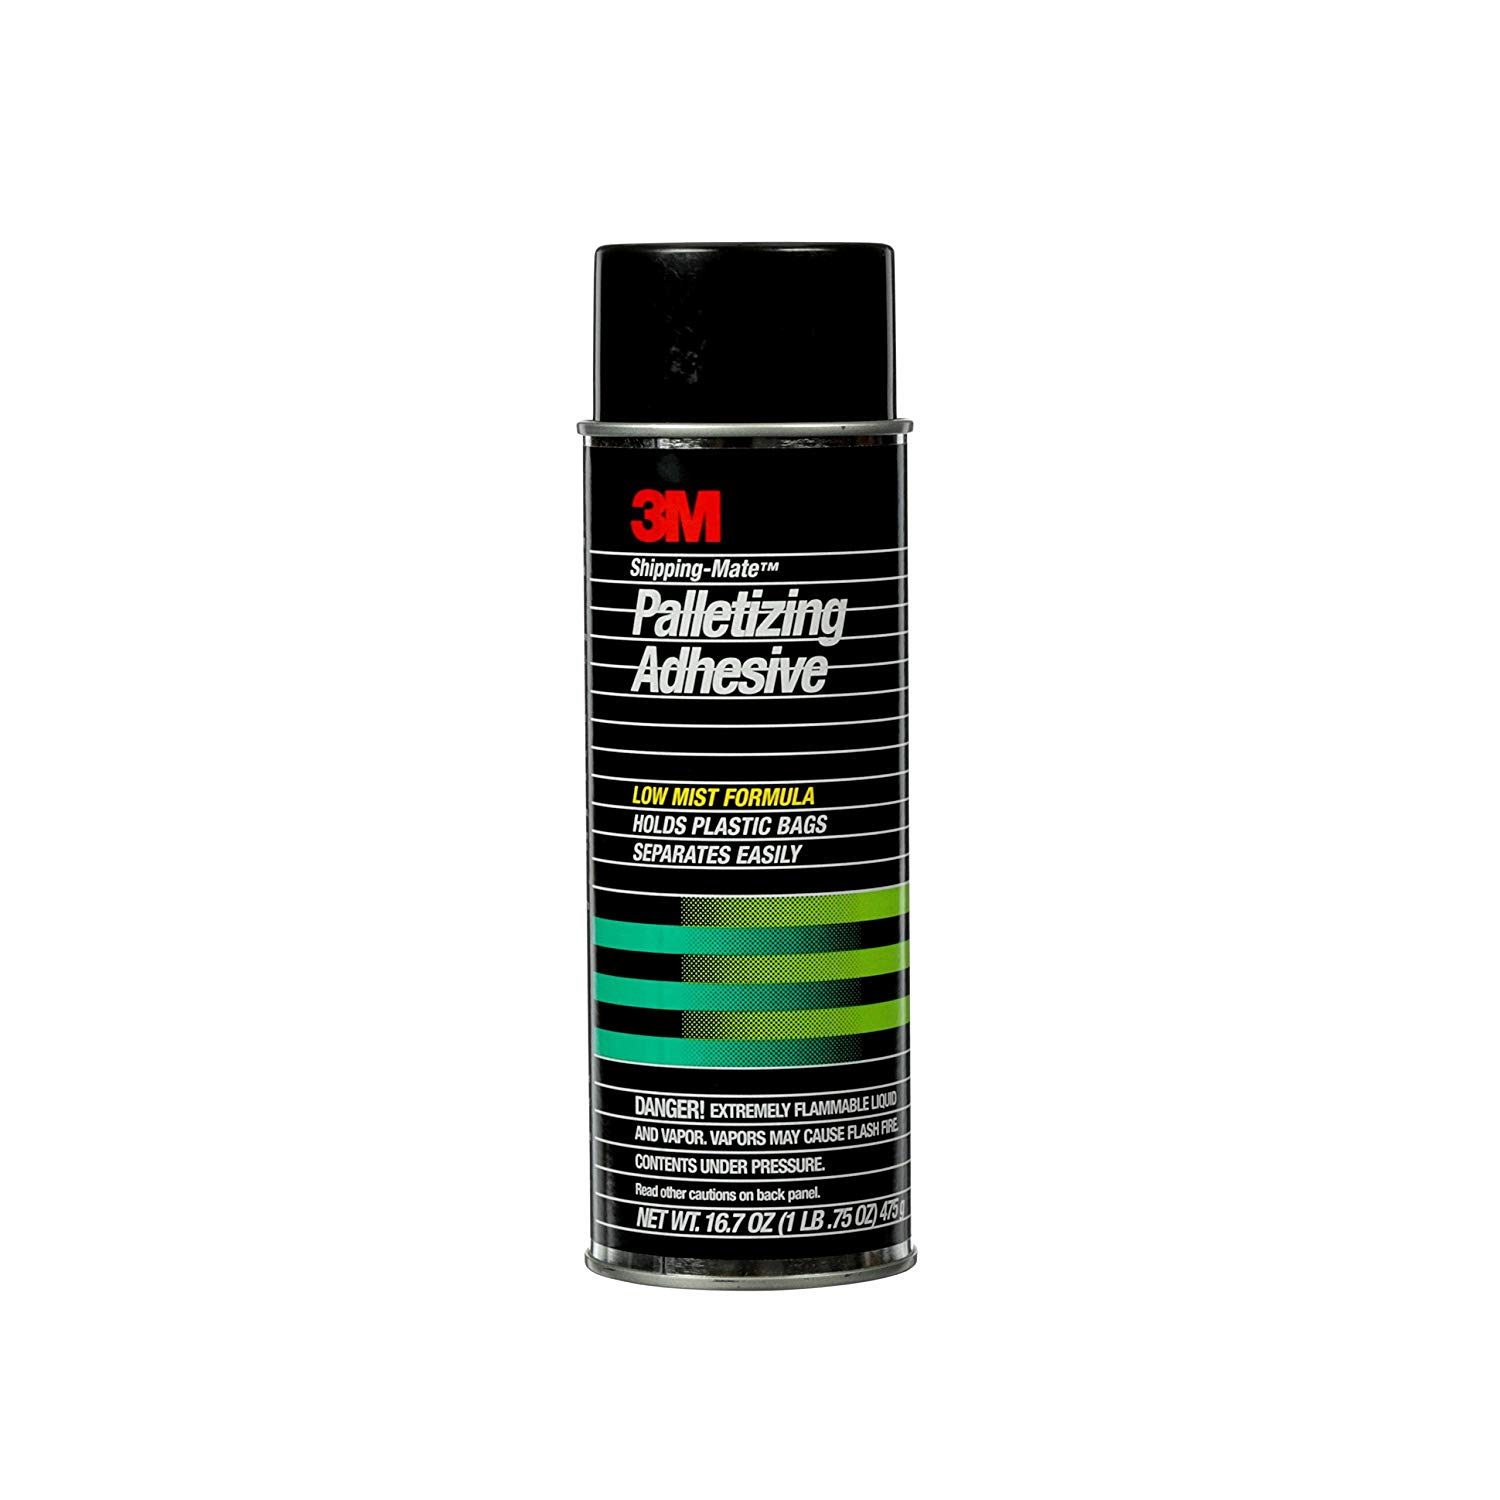 Adhesive Spray - Palletizing - 3M 17 oz.